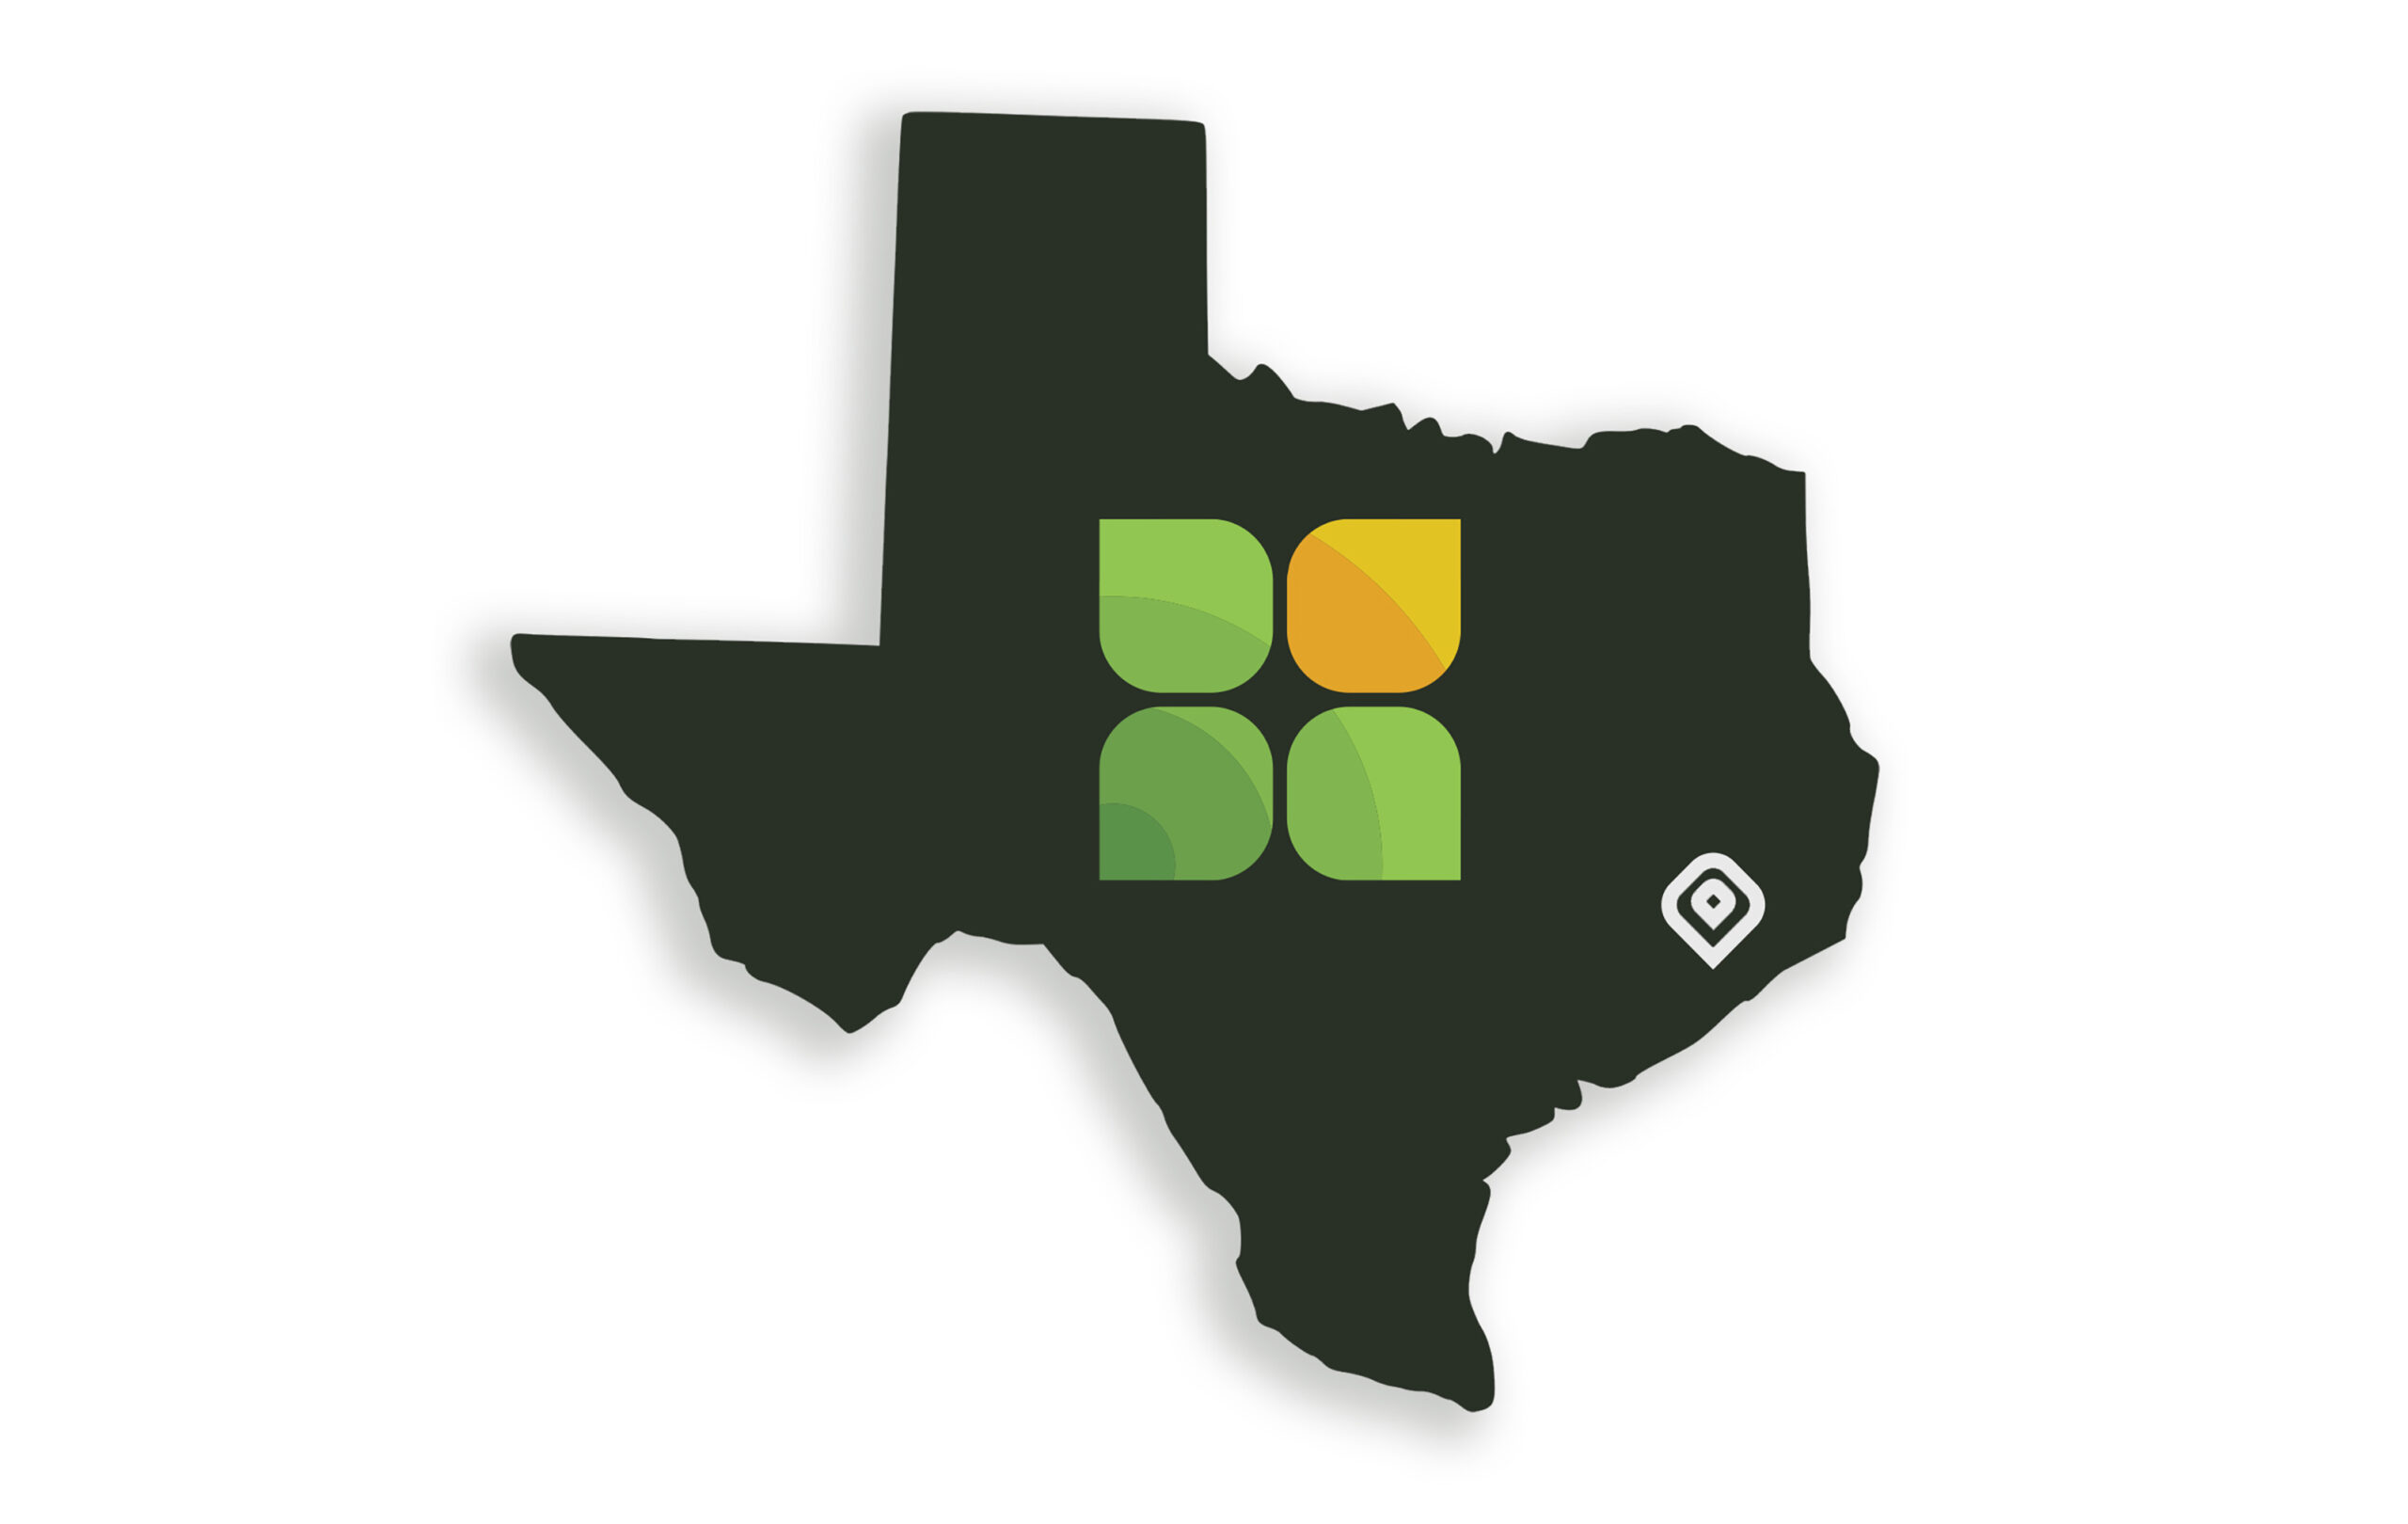 LEAF Expands U.S. Footprint With New Houston, Texas Office